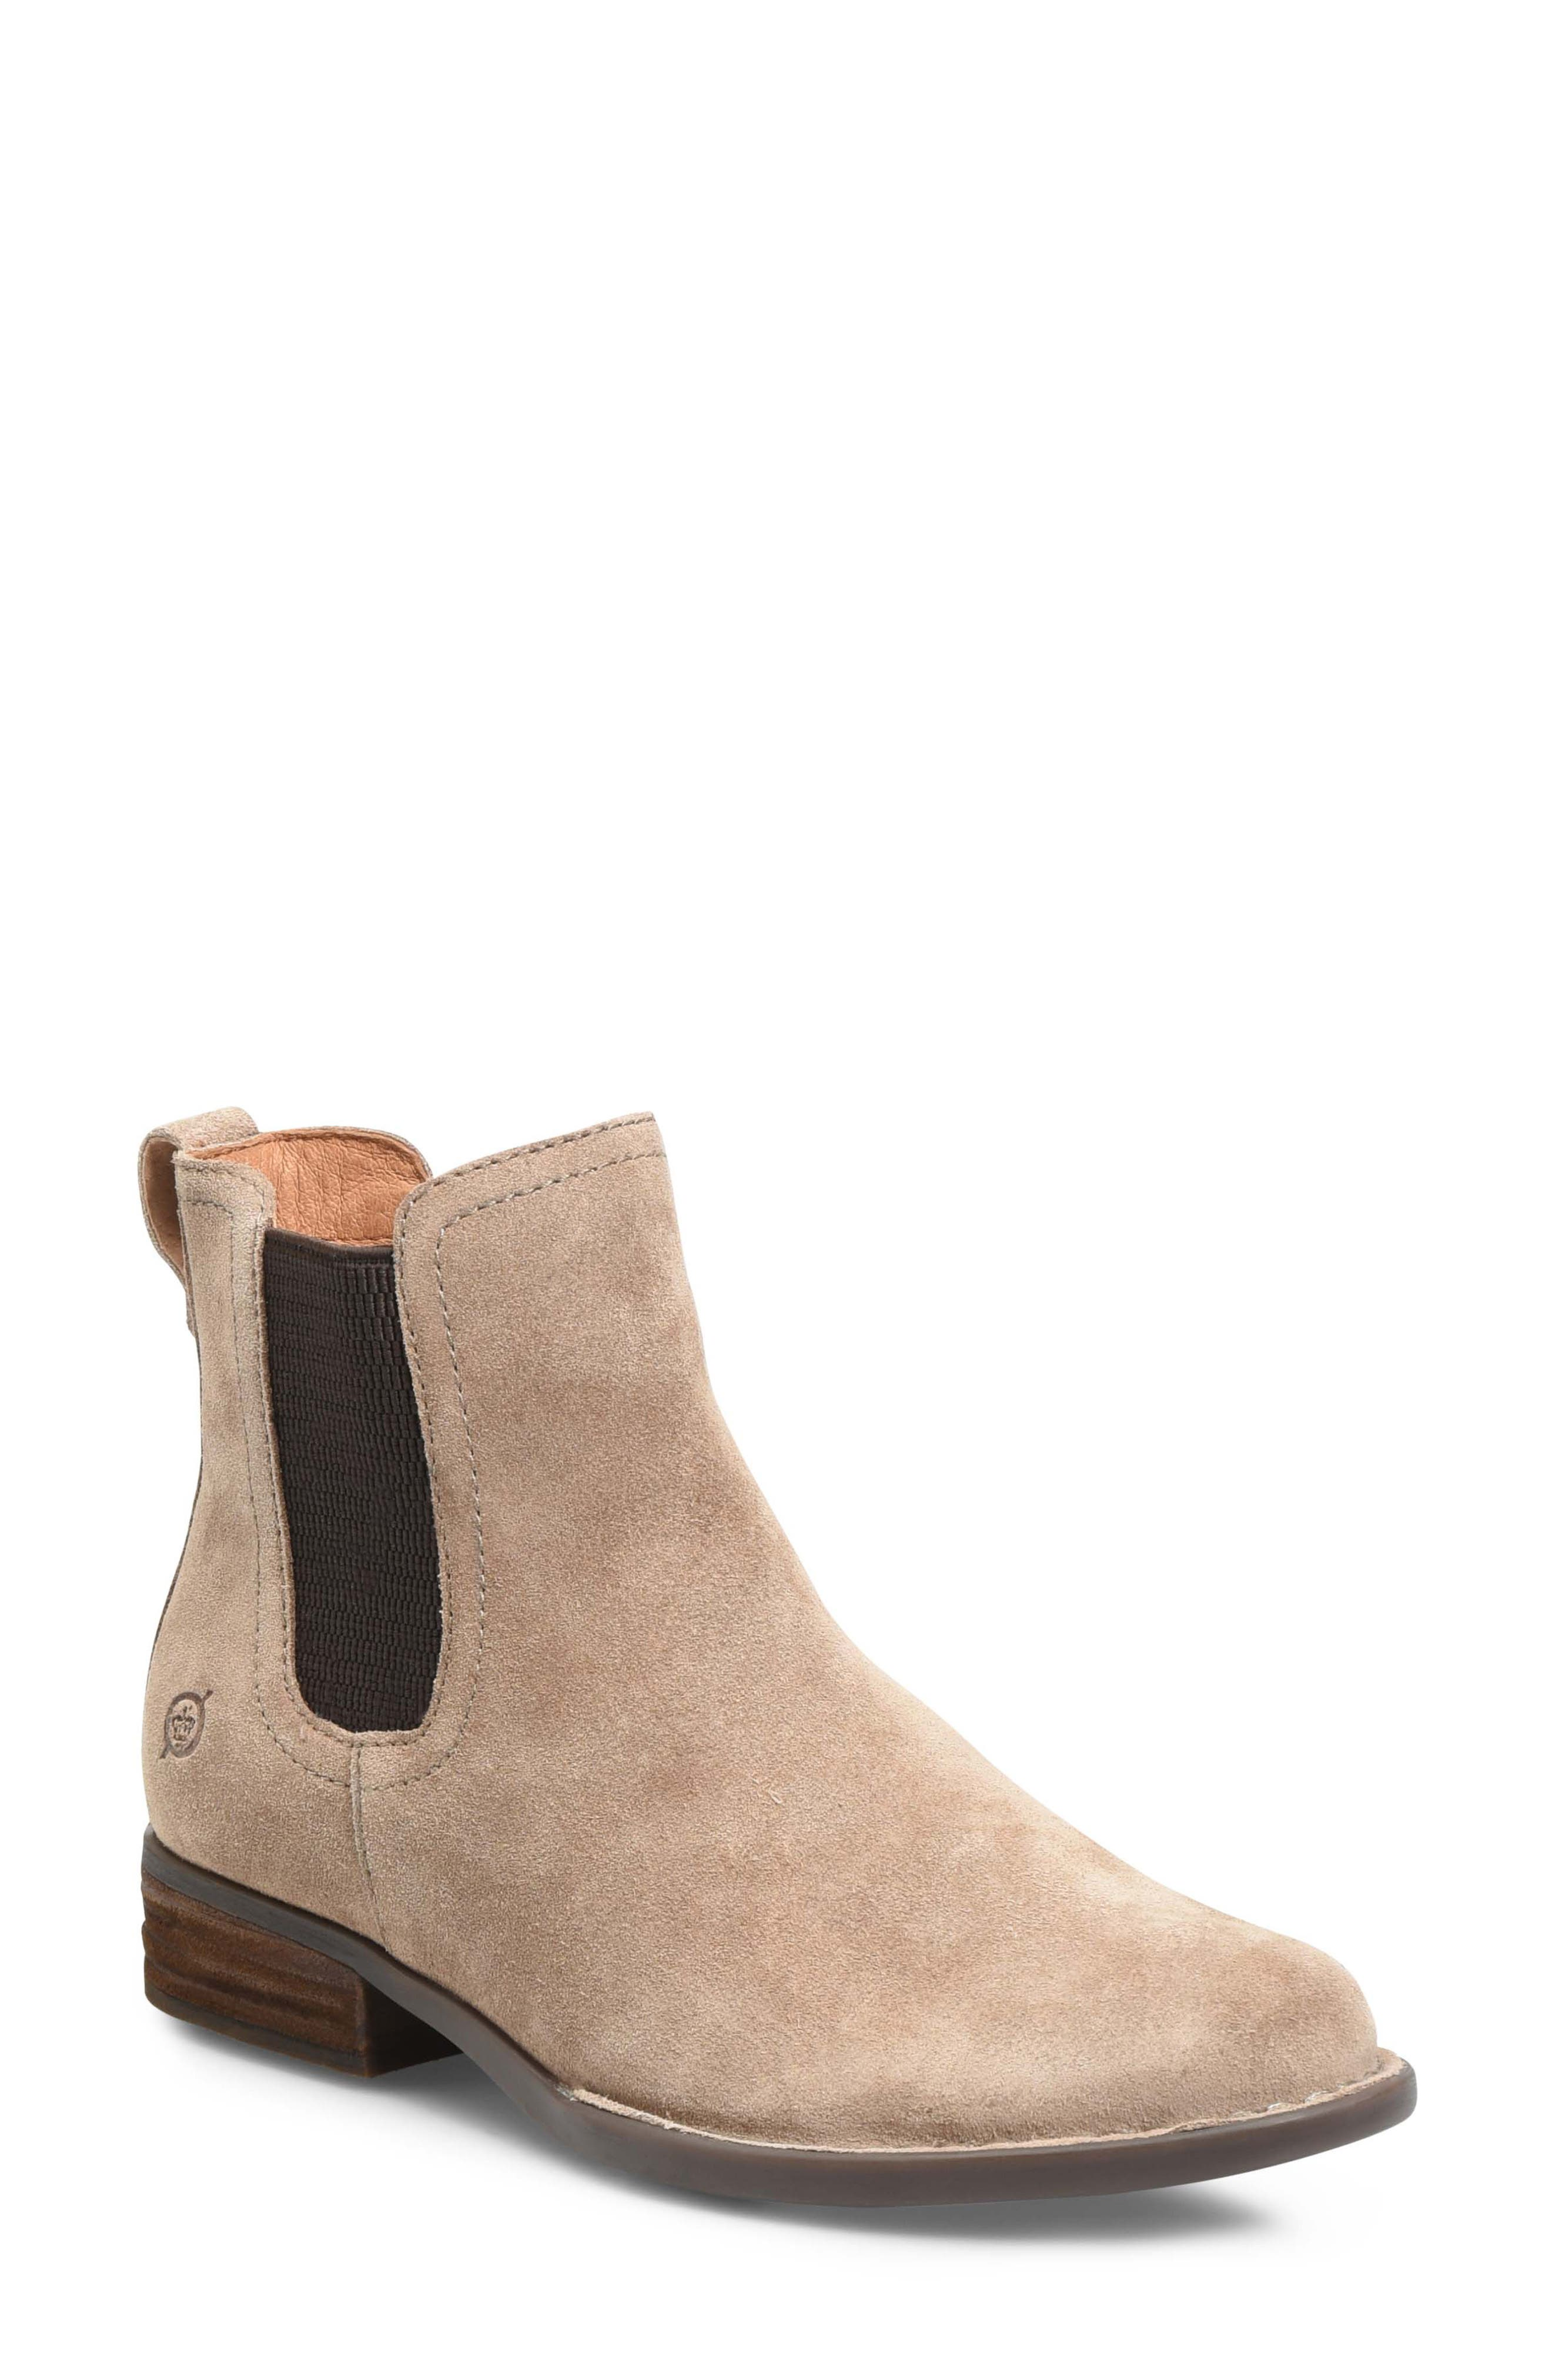 BØRN Casco Chelsea Boot, Main, color, DARK TAUPE SUEDE